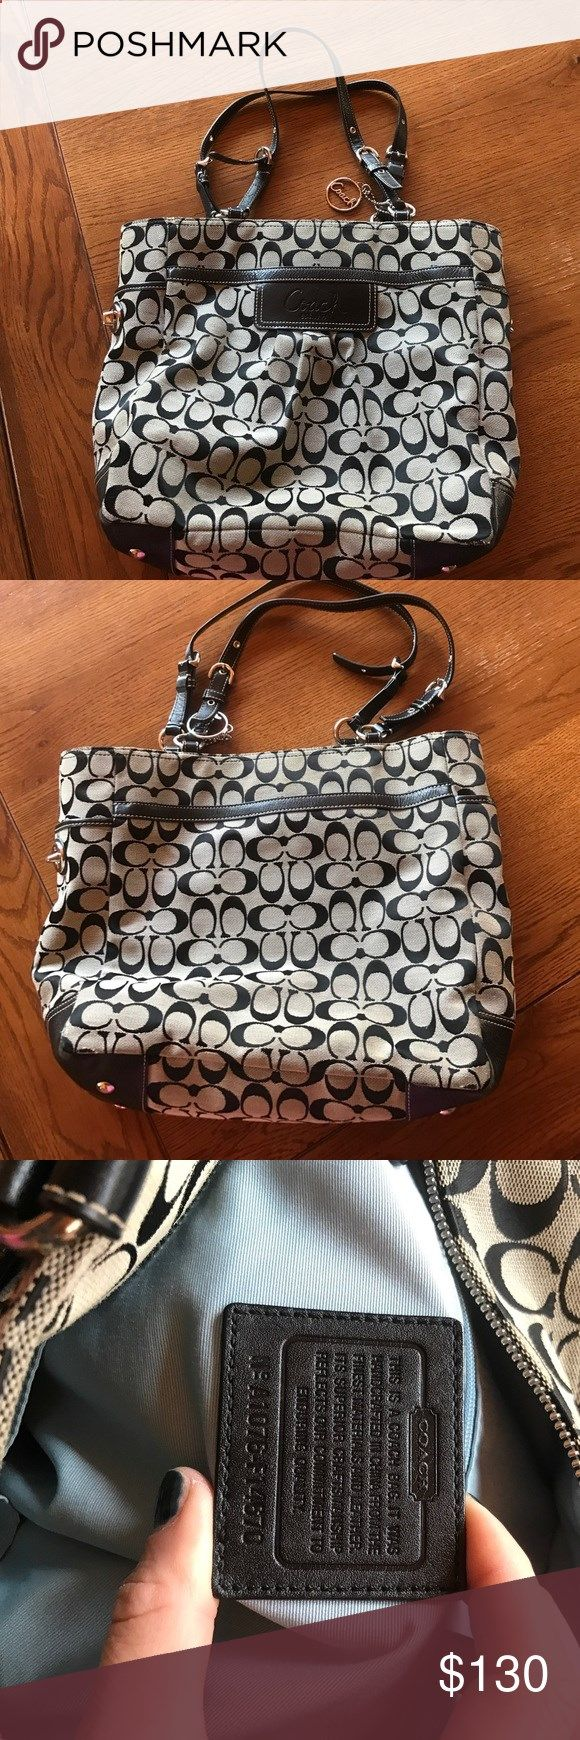 Coach Purse; black and silver tote LIKE NEW! Gently used. Authentic. Black and silver Coach tote purse dimensions 12inx12 inches x 5in base Coach Bags Totes